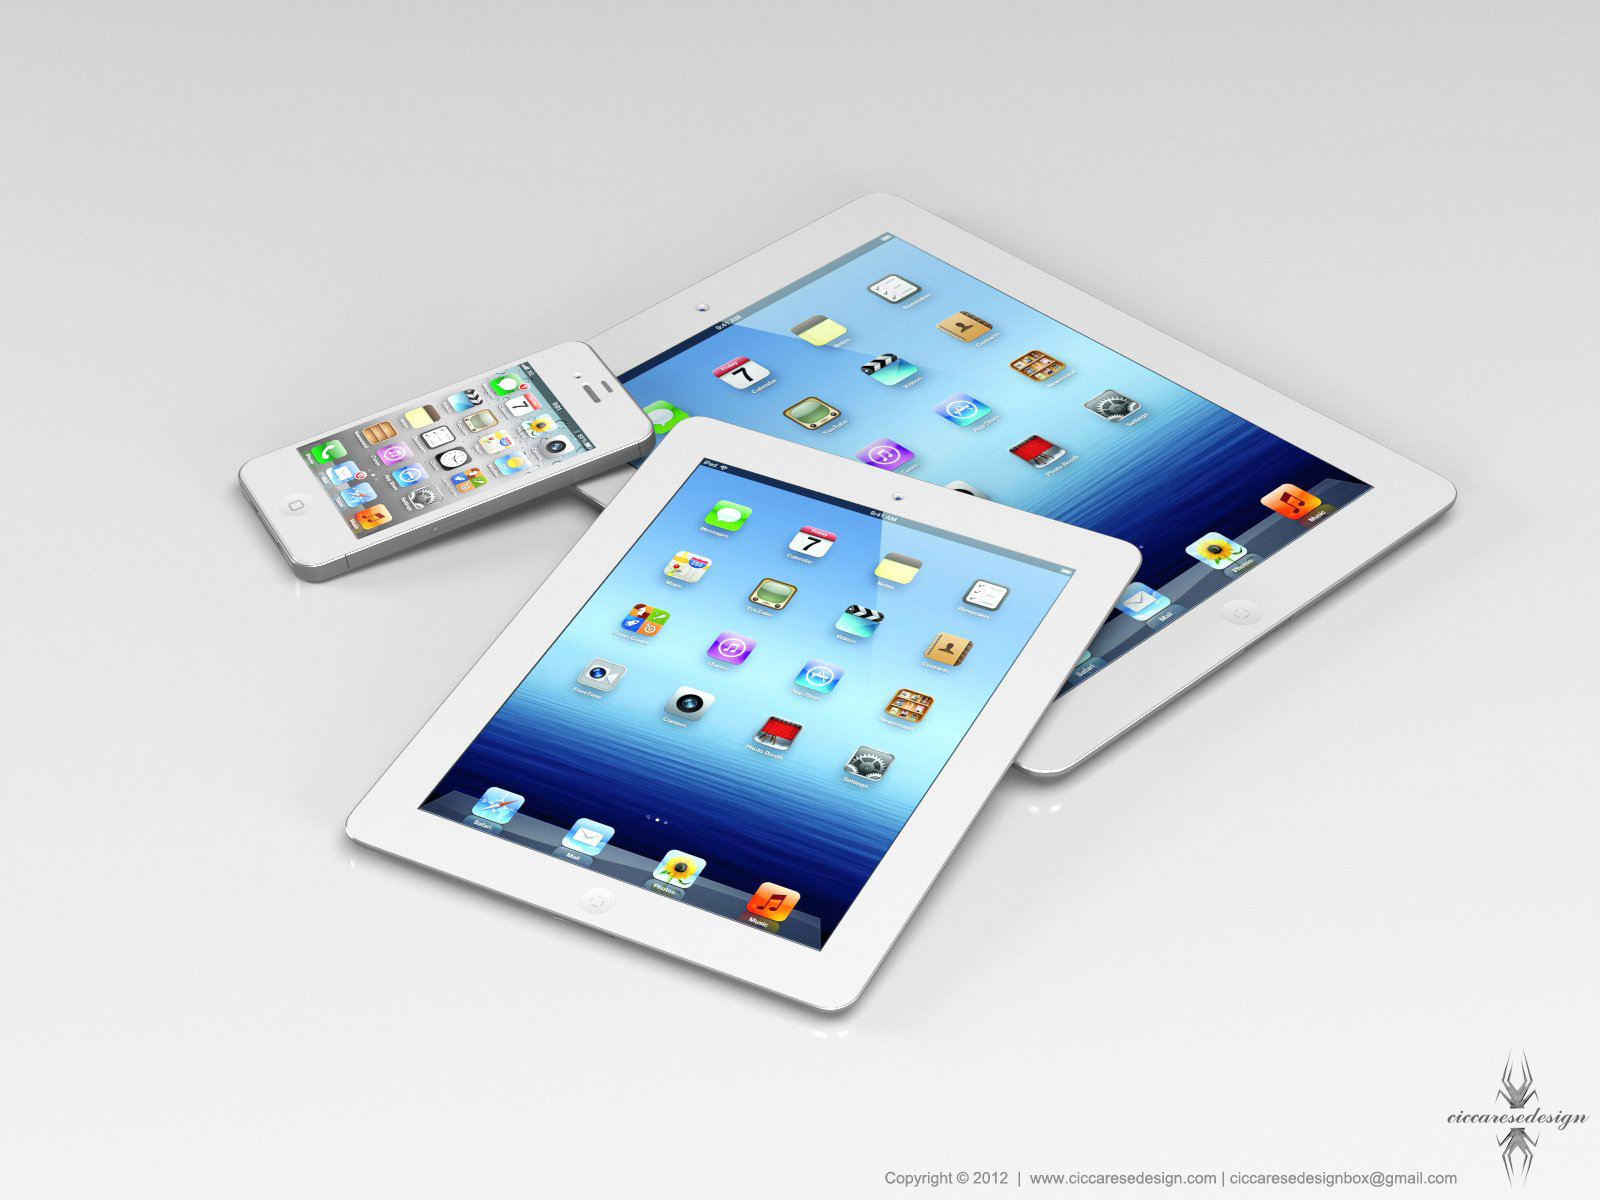 iPad Mini concept via Ciccares Design